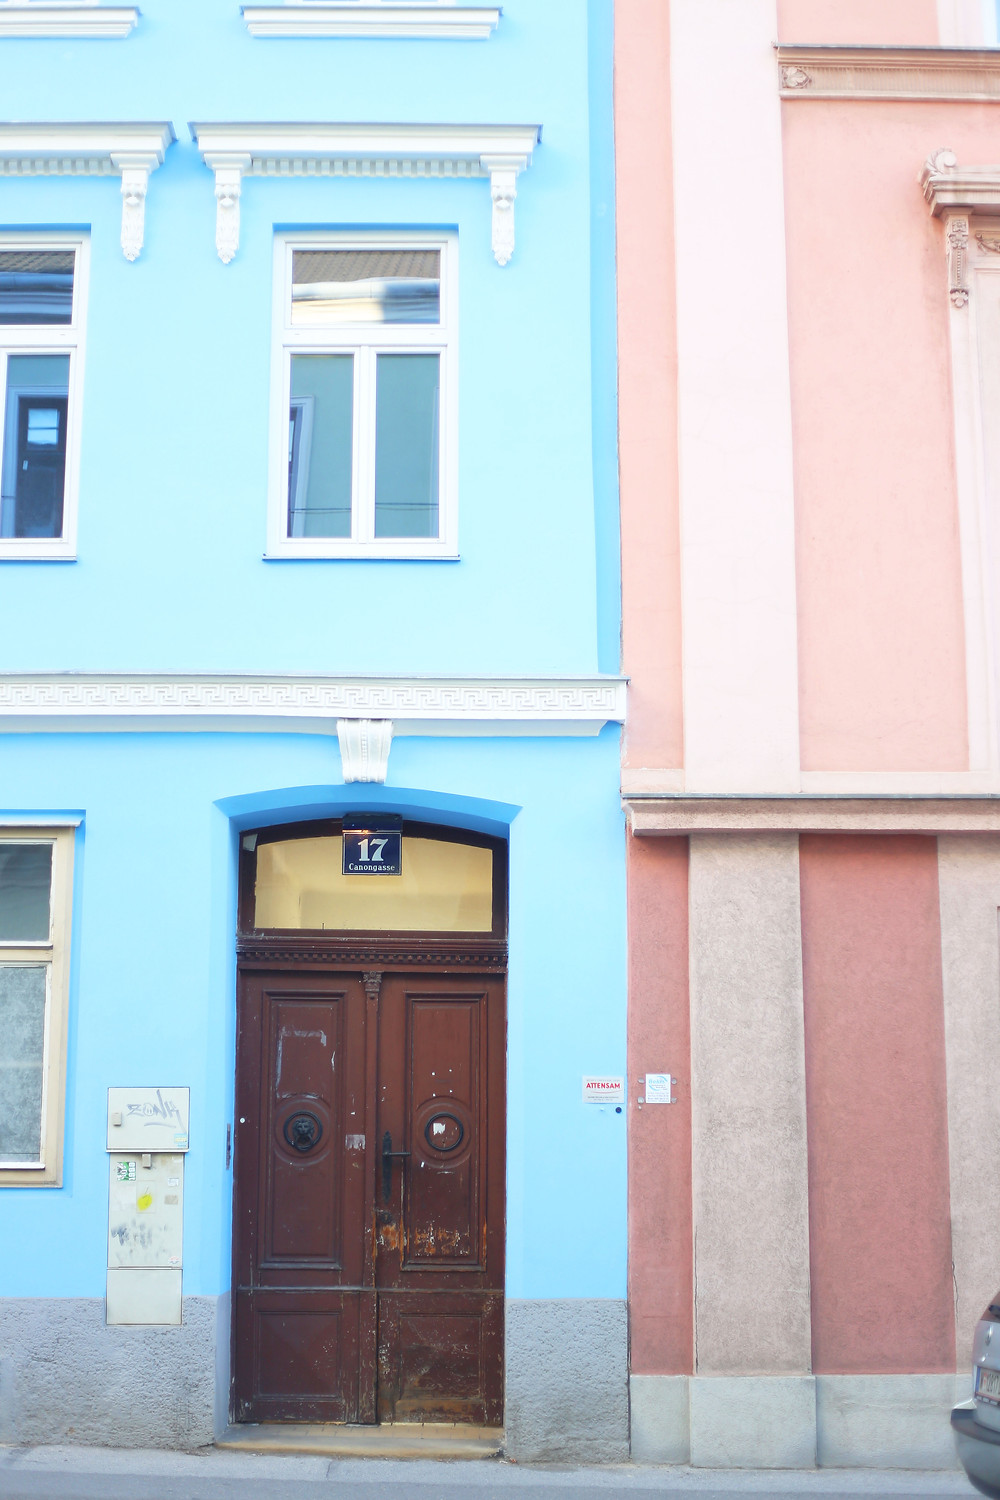 blue and pink building